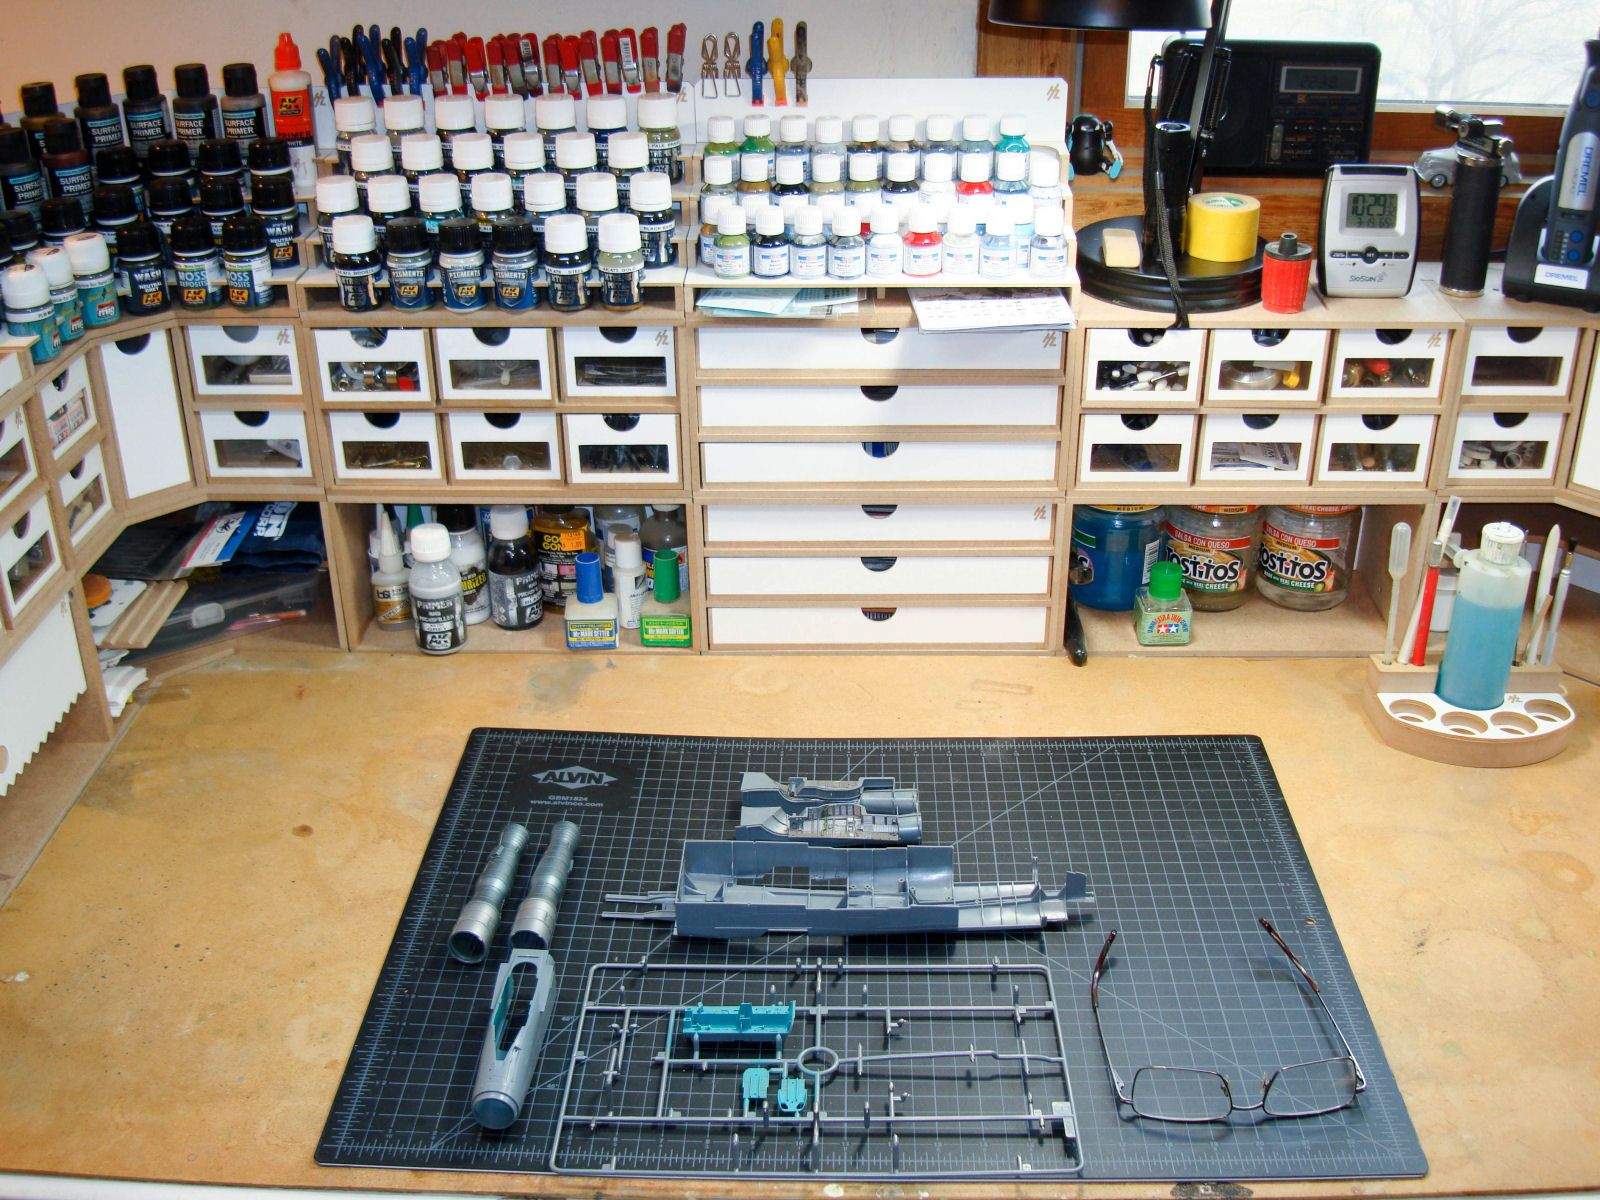 Workbench 2 0 hobbyzone modular workshop system review for Bench tool system